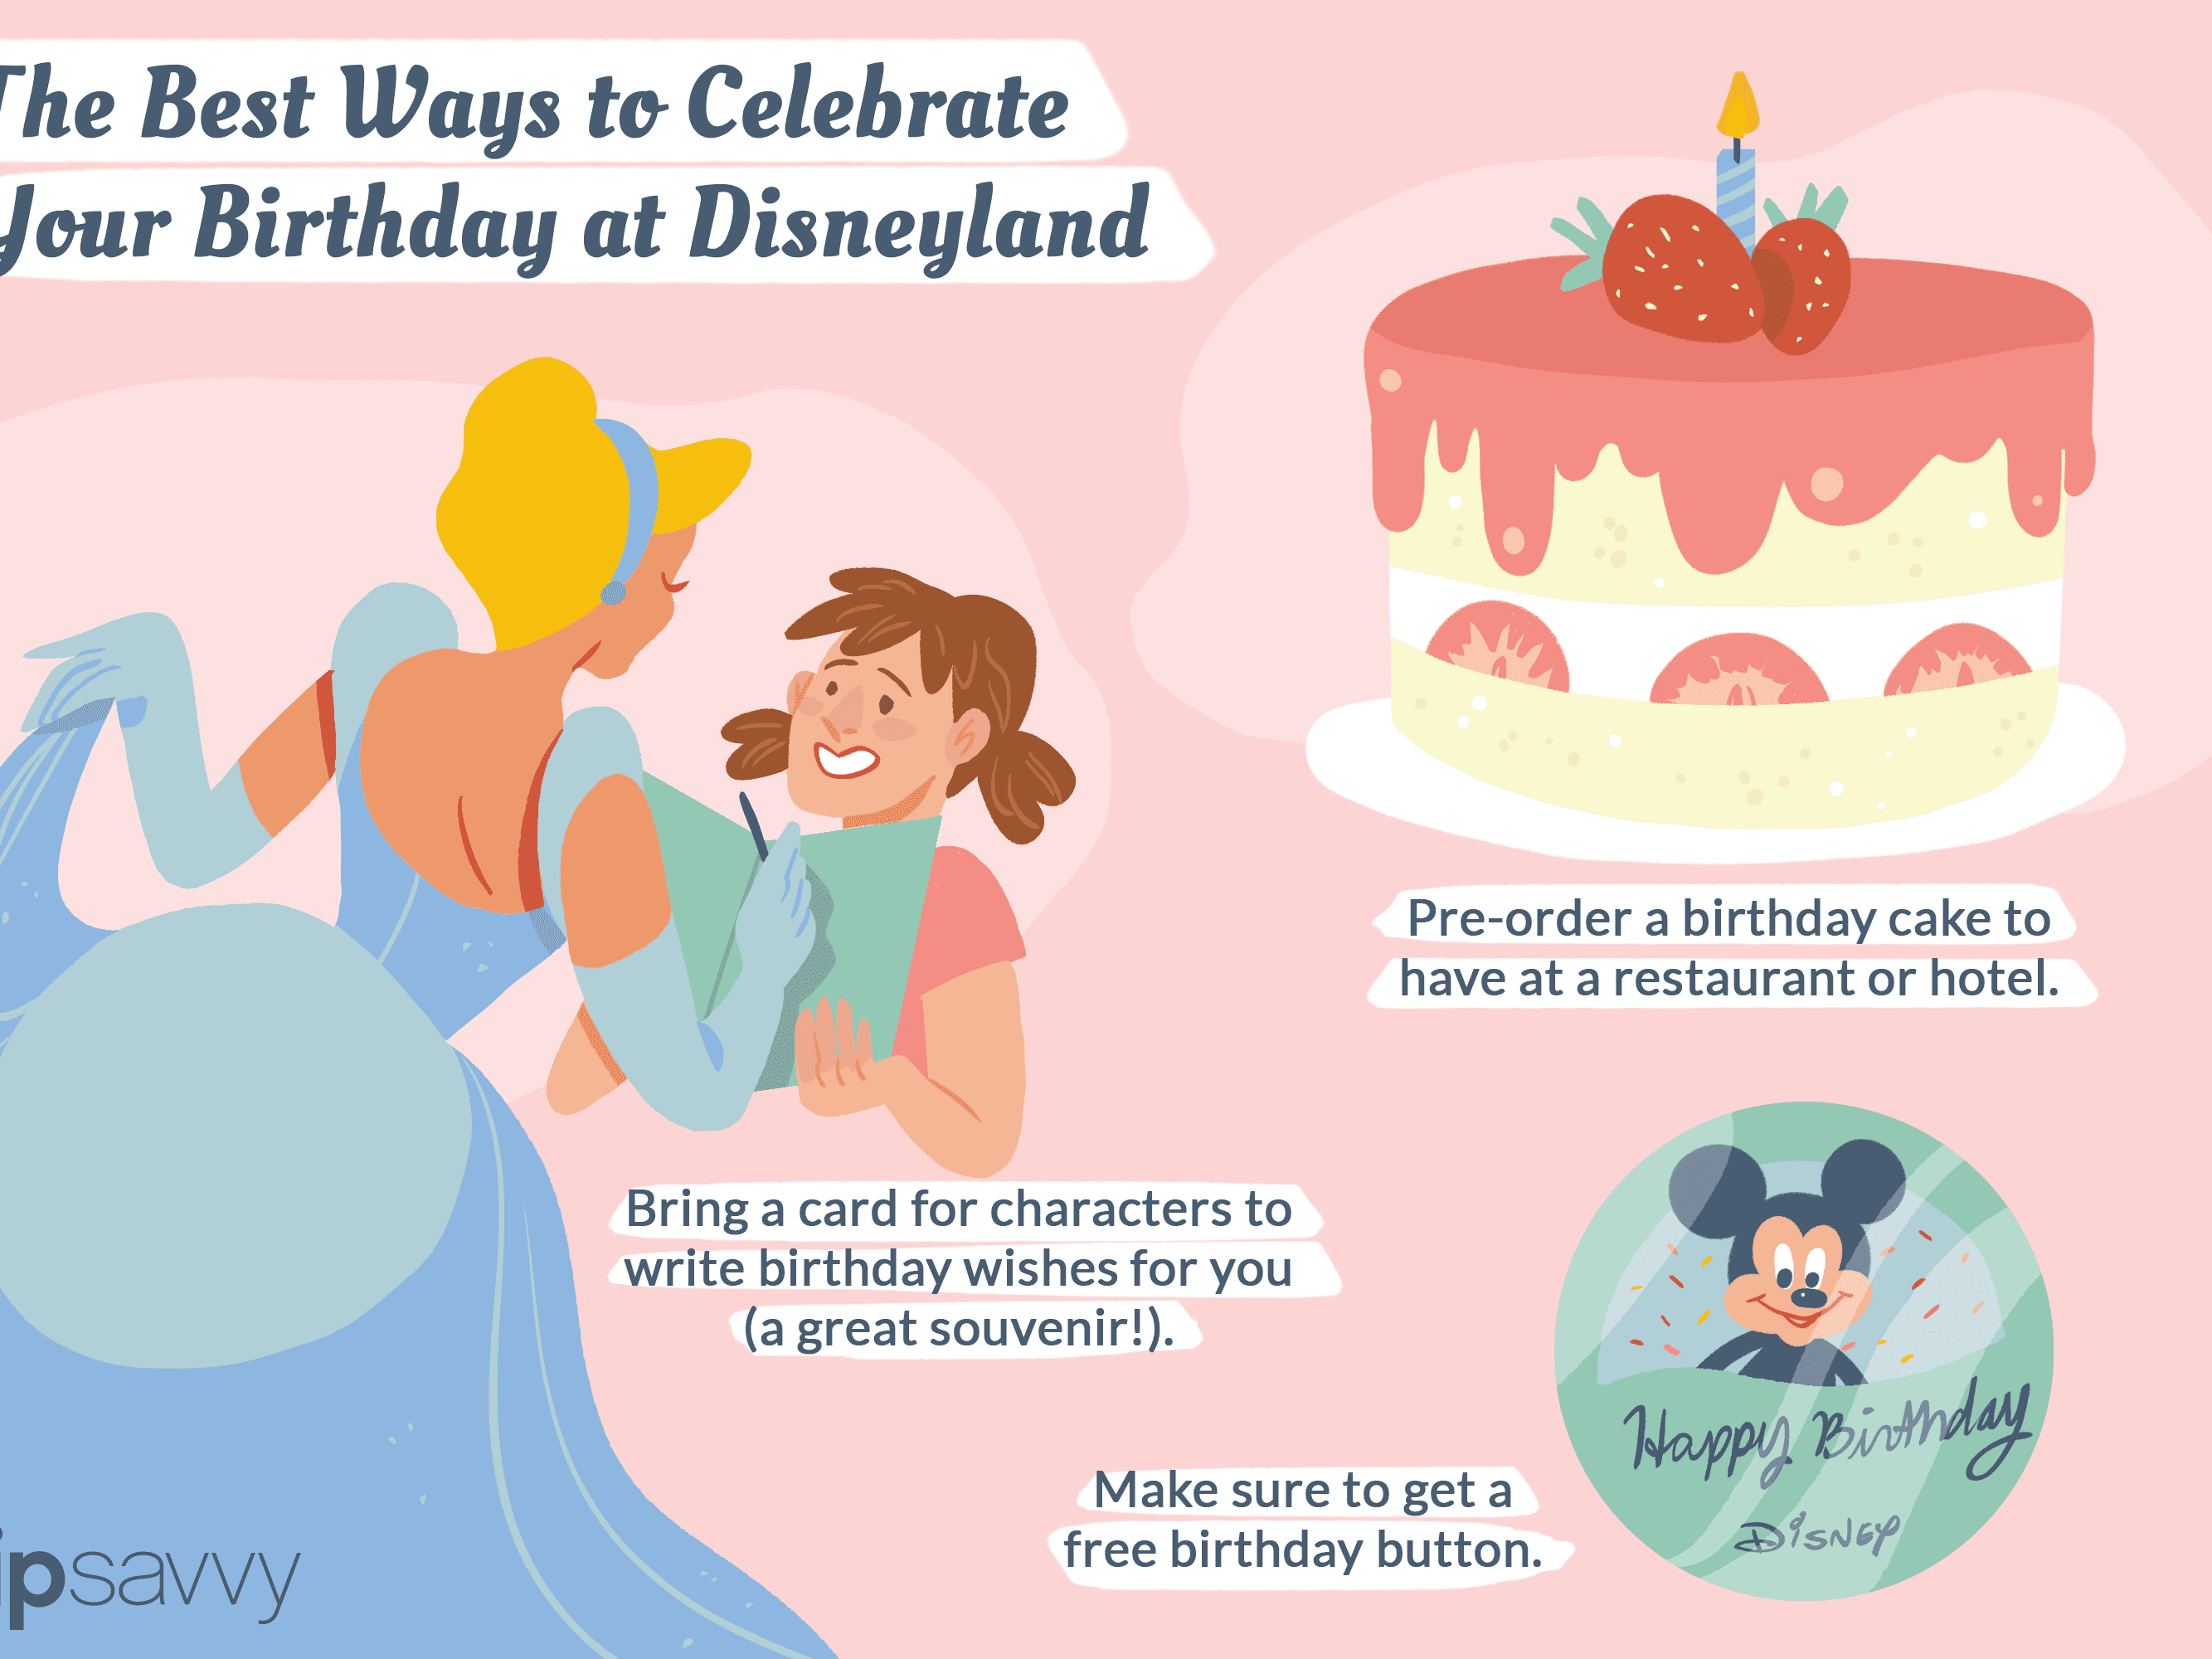 Pleasing A Disneyland Birthday What To Do And Ways To Celebrate Personalised Birthday Cards Veneteletsinfo